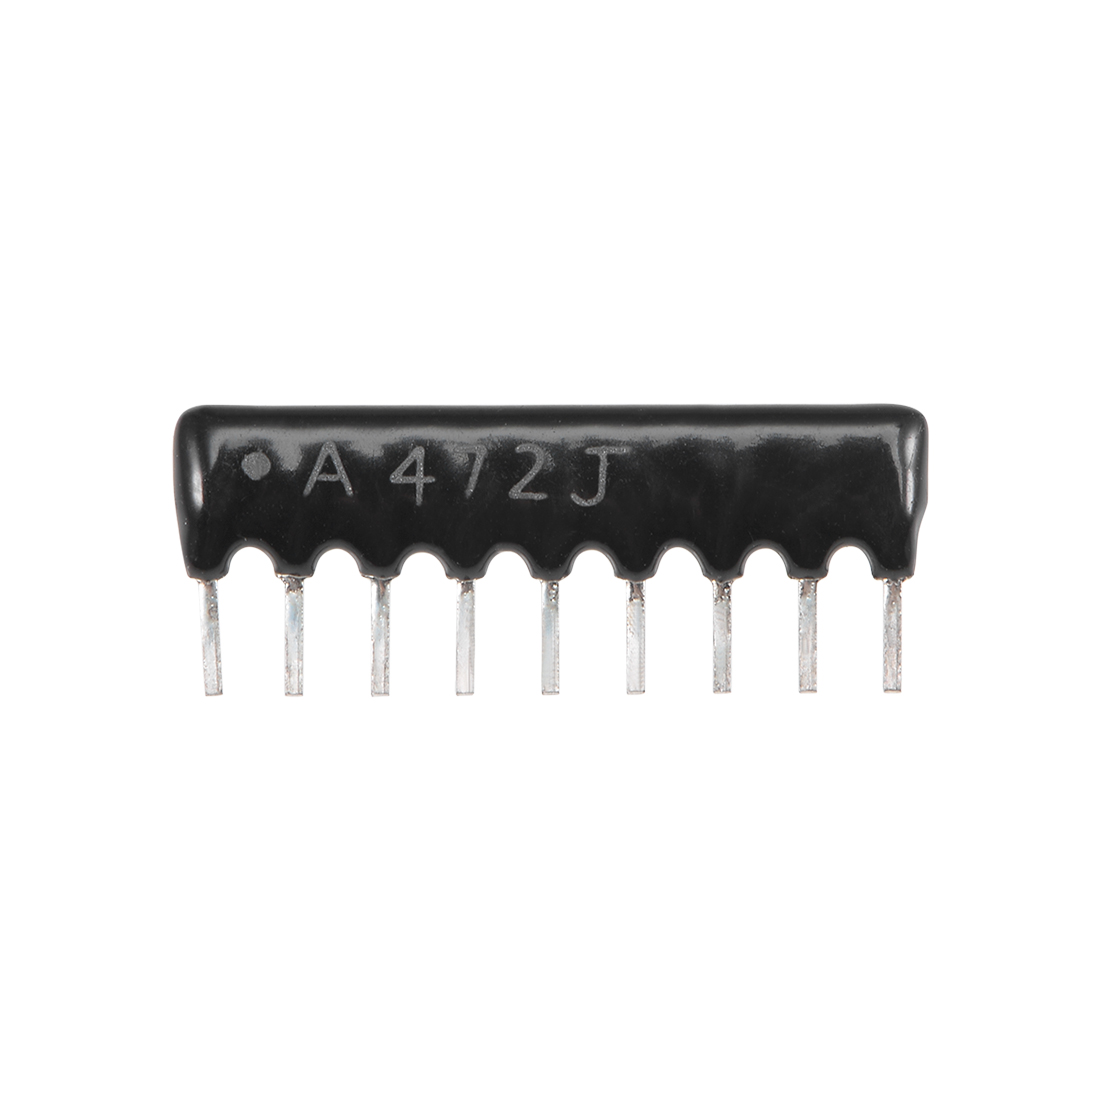 4.7K Ohm Resistor Network 1/8W SIP-9 Array 2.54mm Bussed Type 5% Tolerance 5pcs